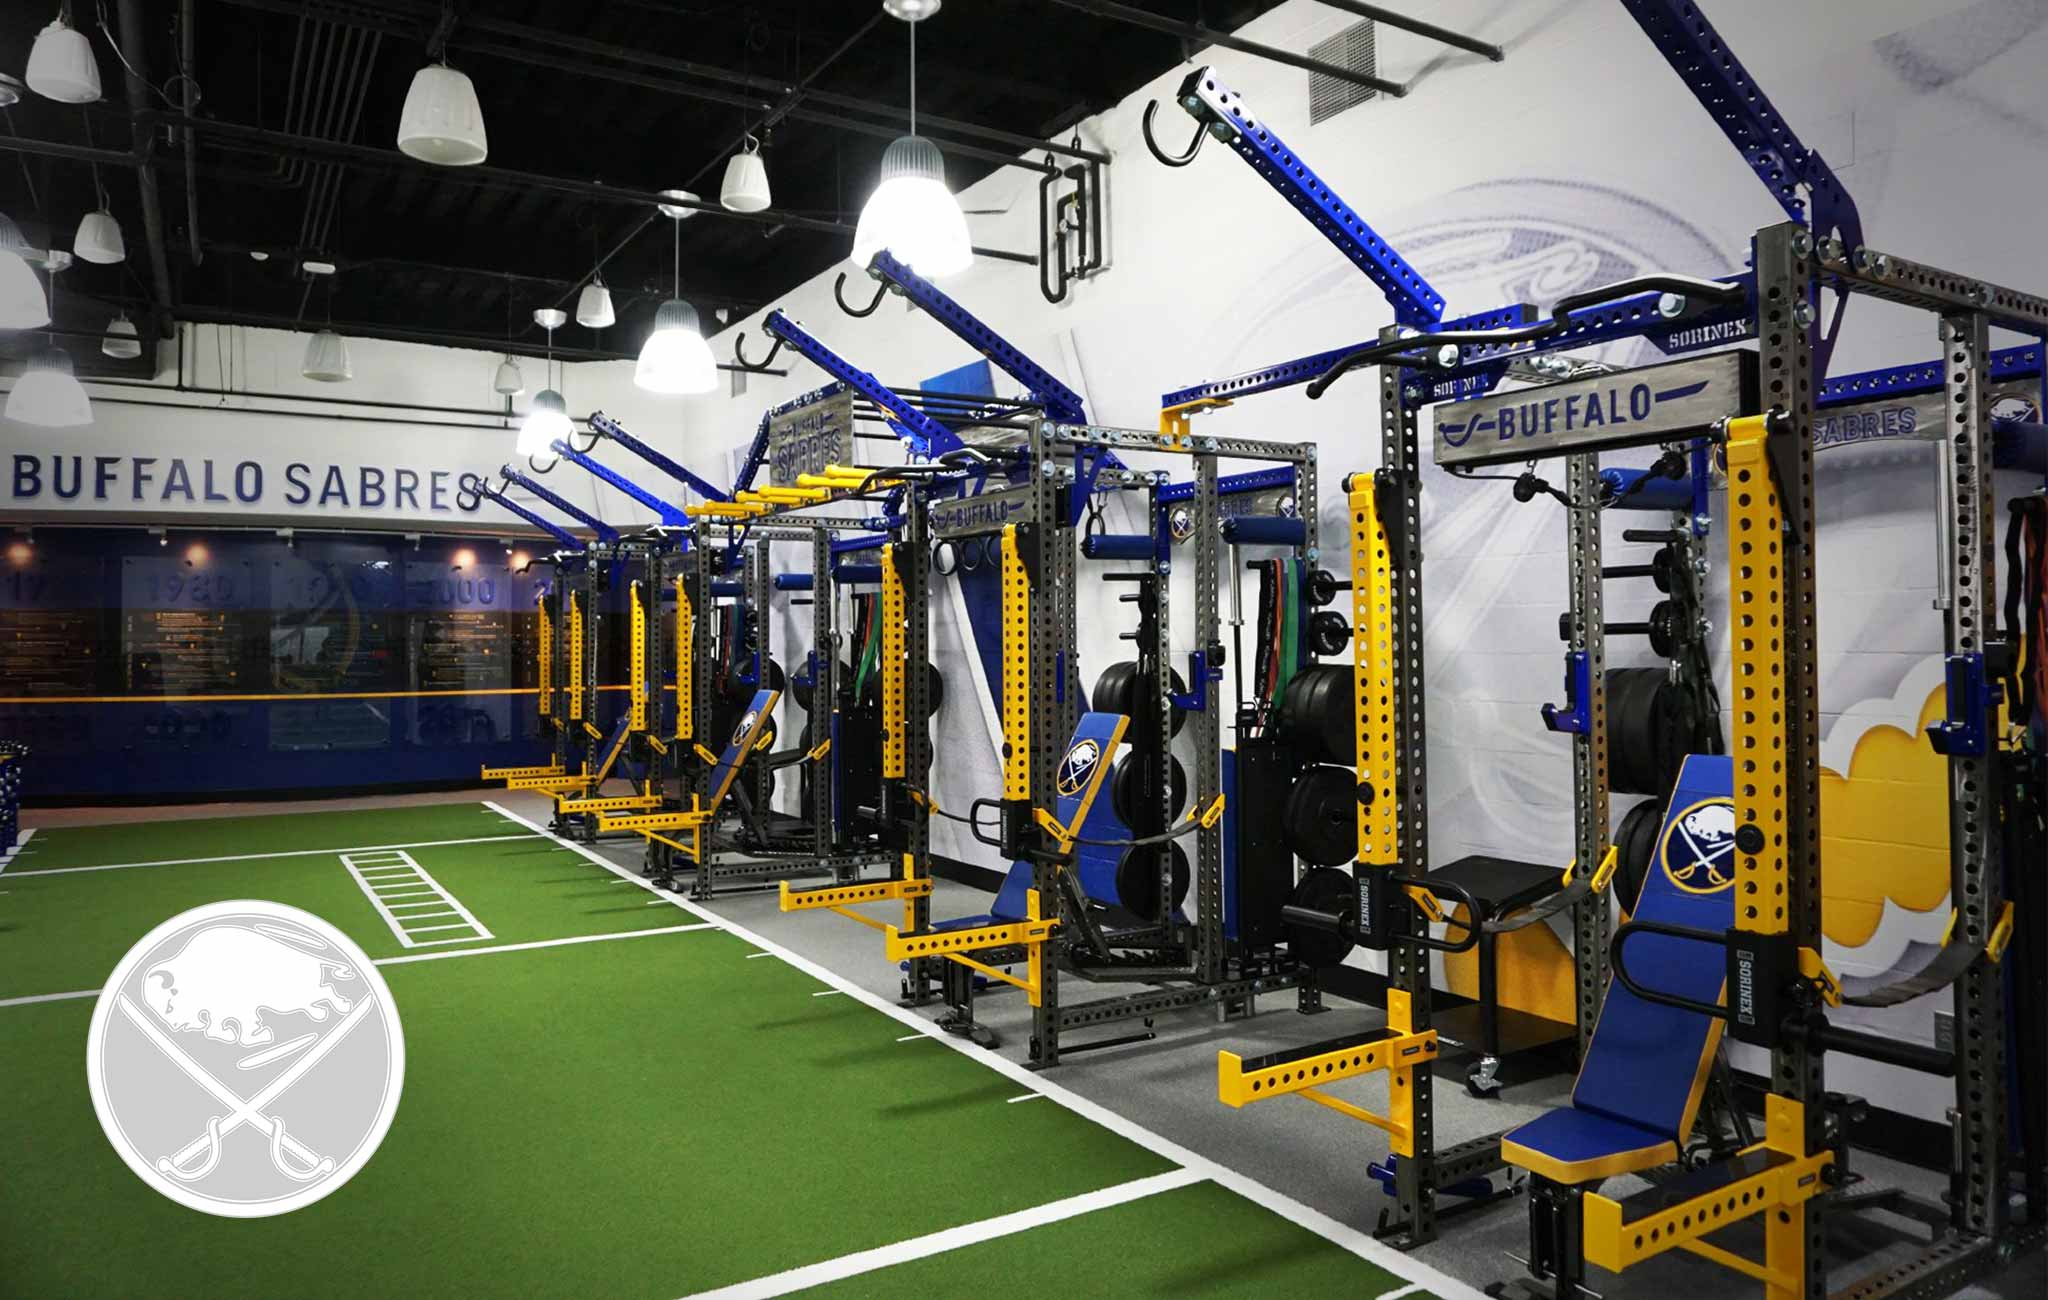 Buffalo Sabres Sorinex strength and conditioning facility